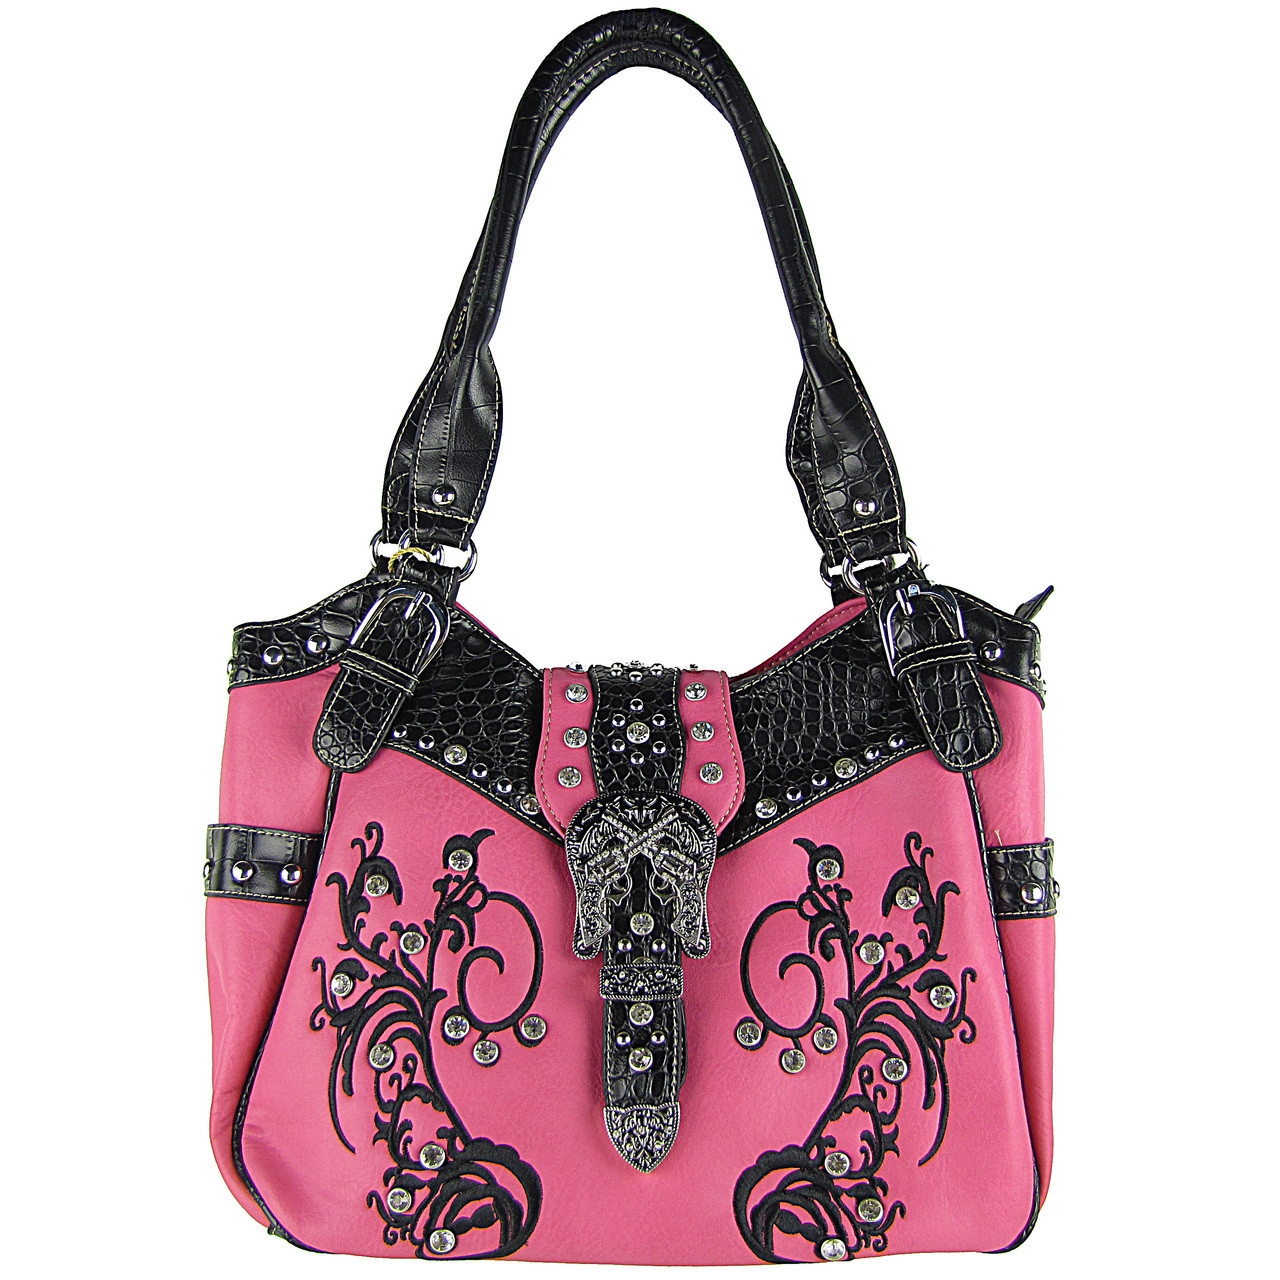 HOT PINK RHINESTONE BUCKLE WITH PISTOLS LOOK SHOULDER HANDBAG HB1-HH404-20HPK